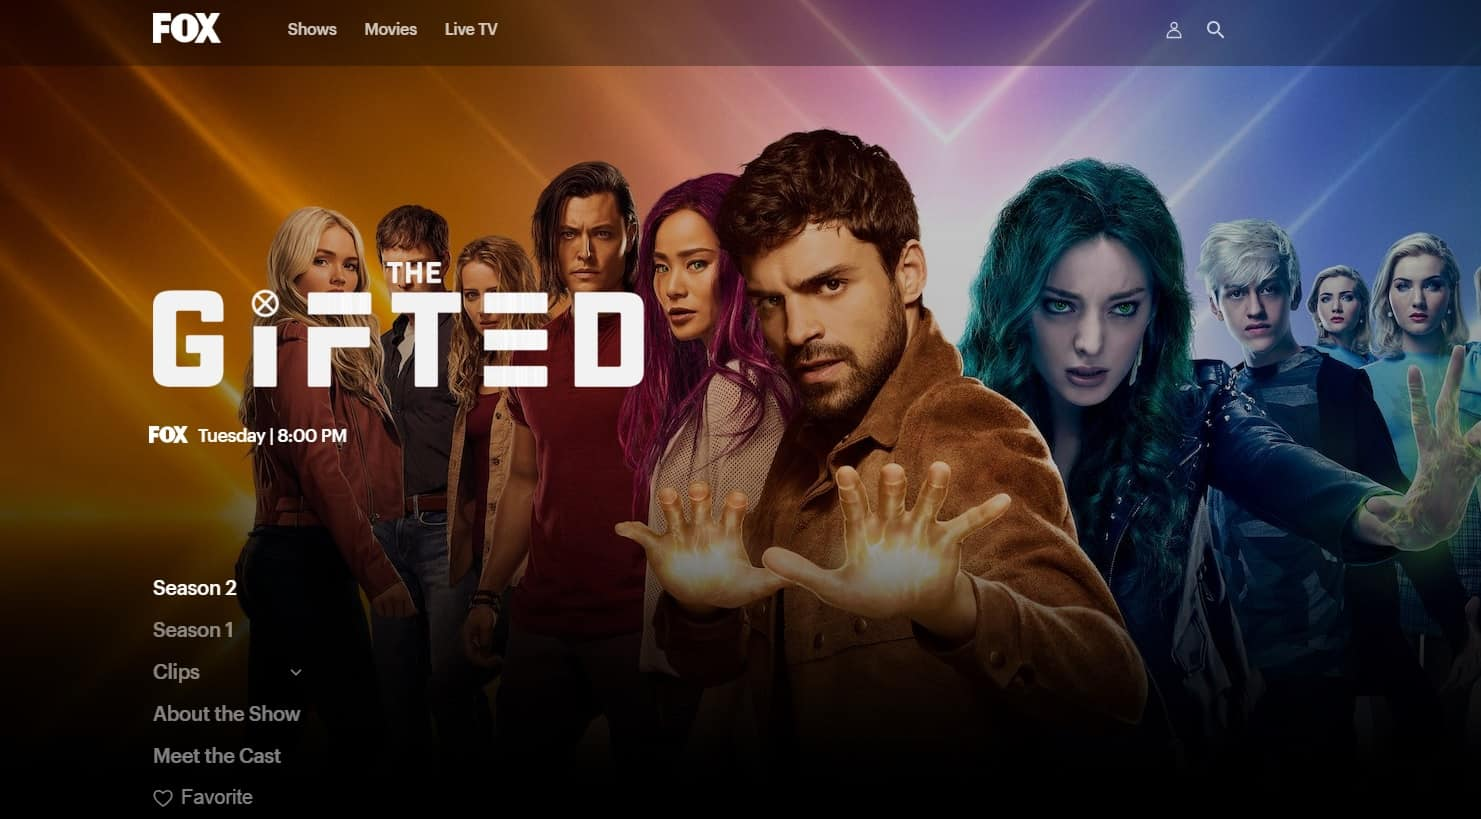 How to watch The Gifted live online